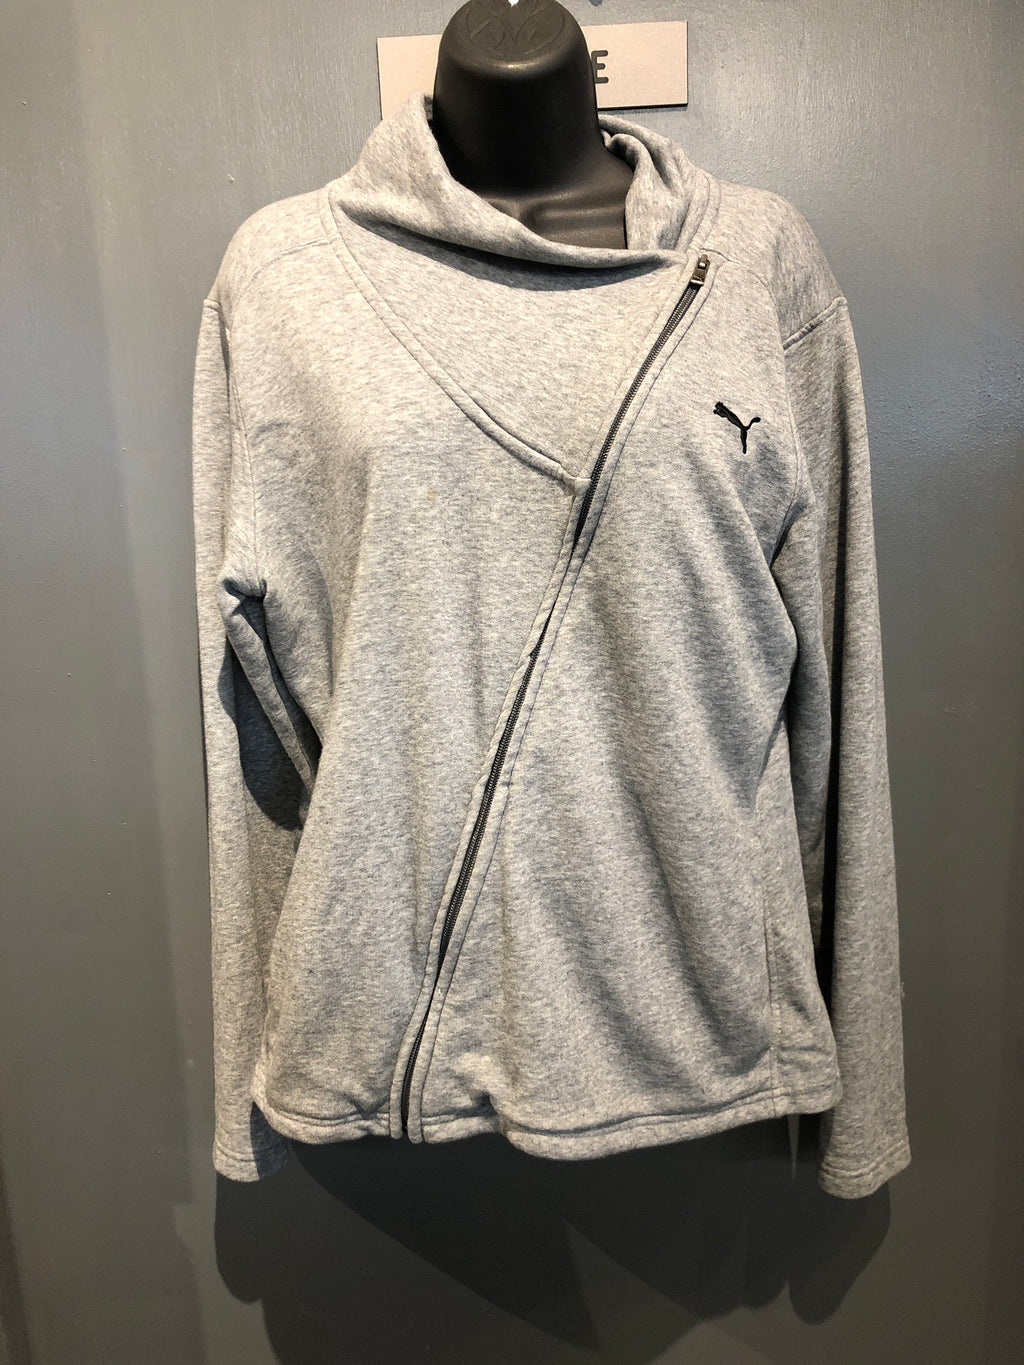 Puma grey zip up sweatshirt size large